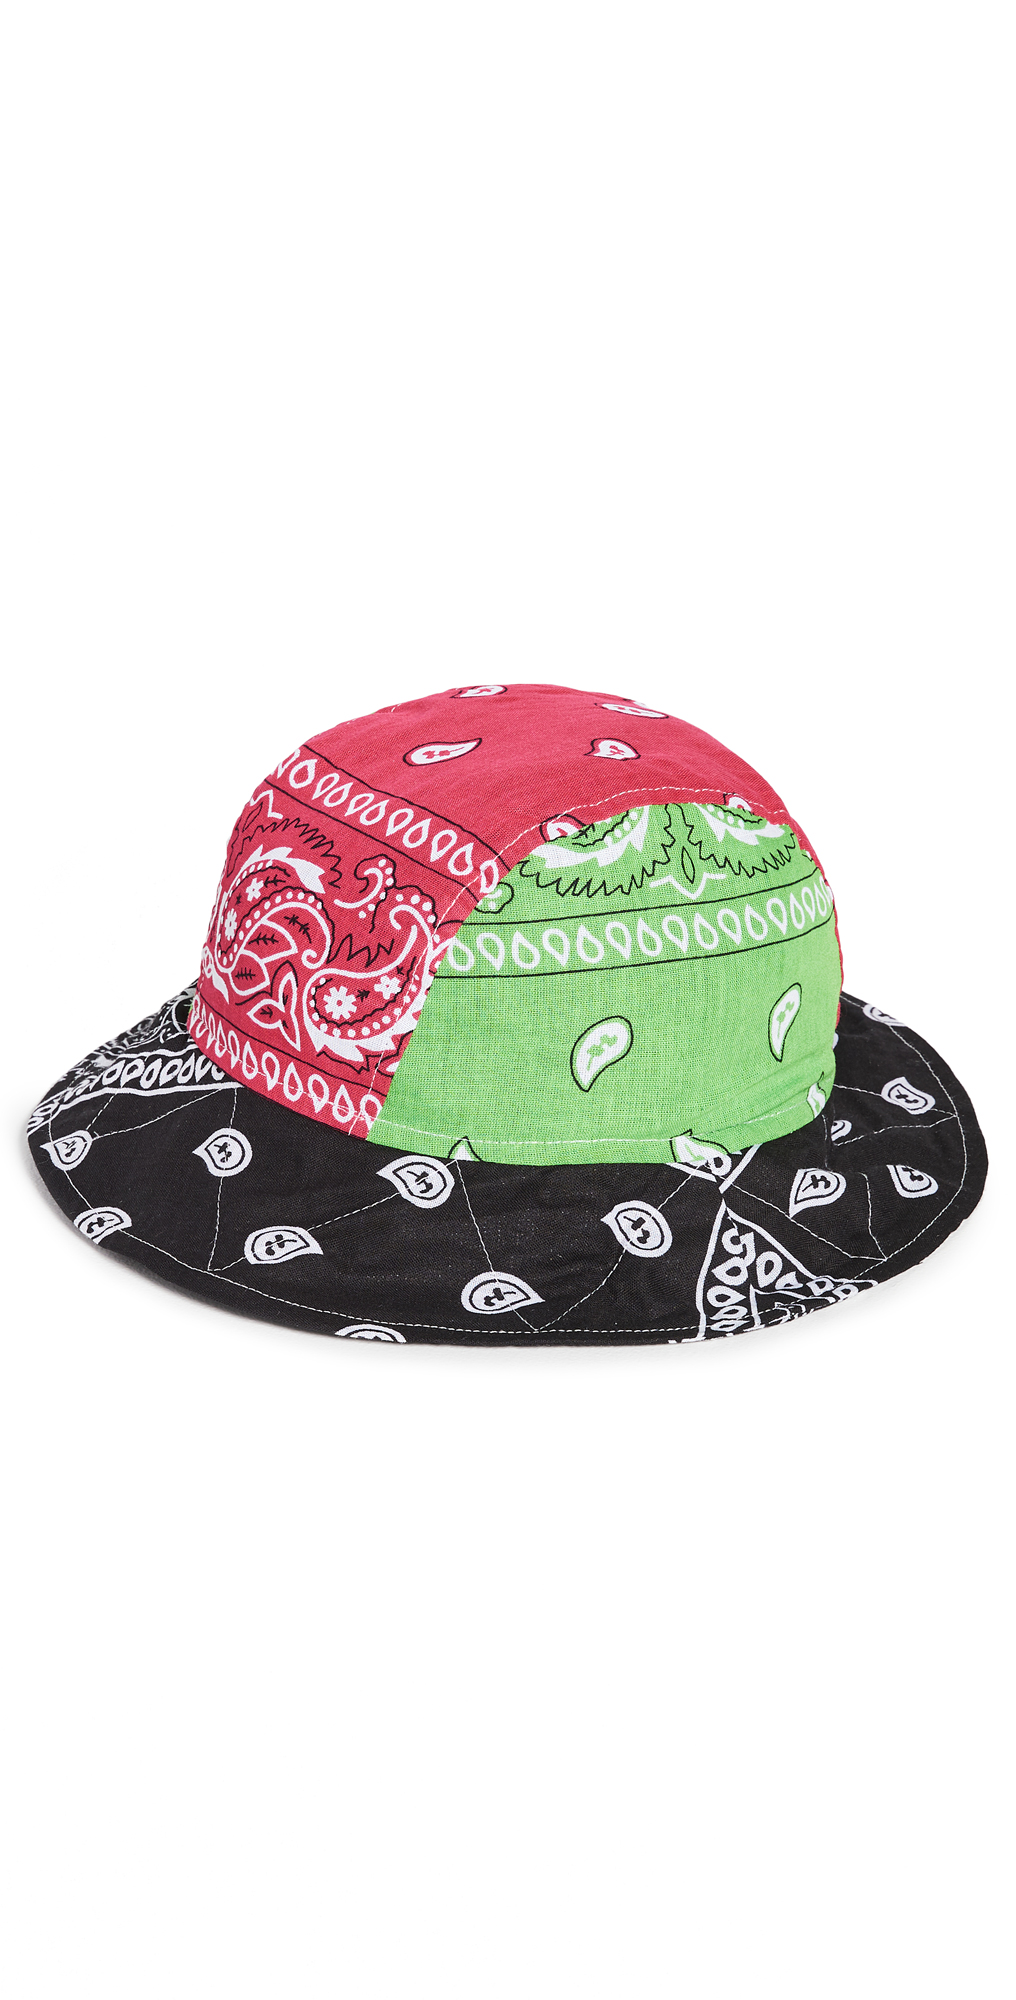 Arizona Love Bandana Bob Mixed Green Bucket Hat